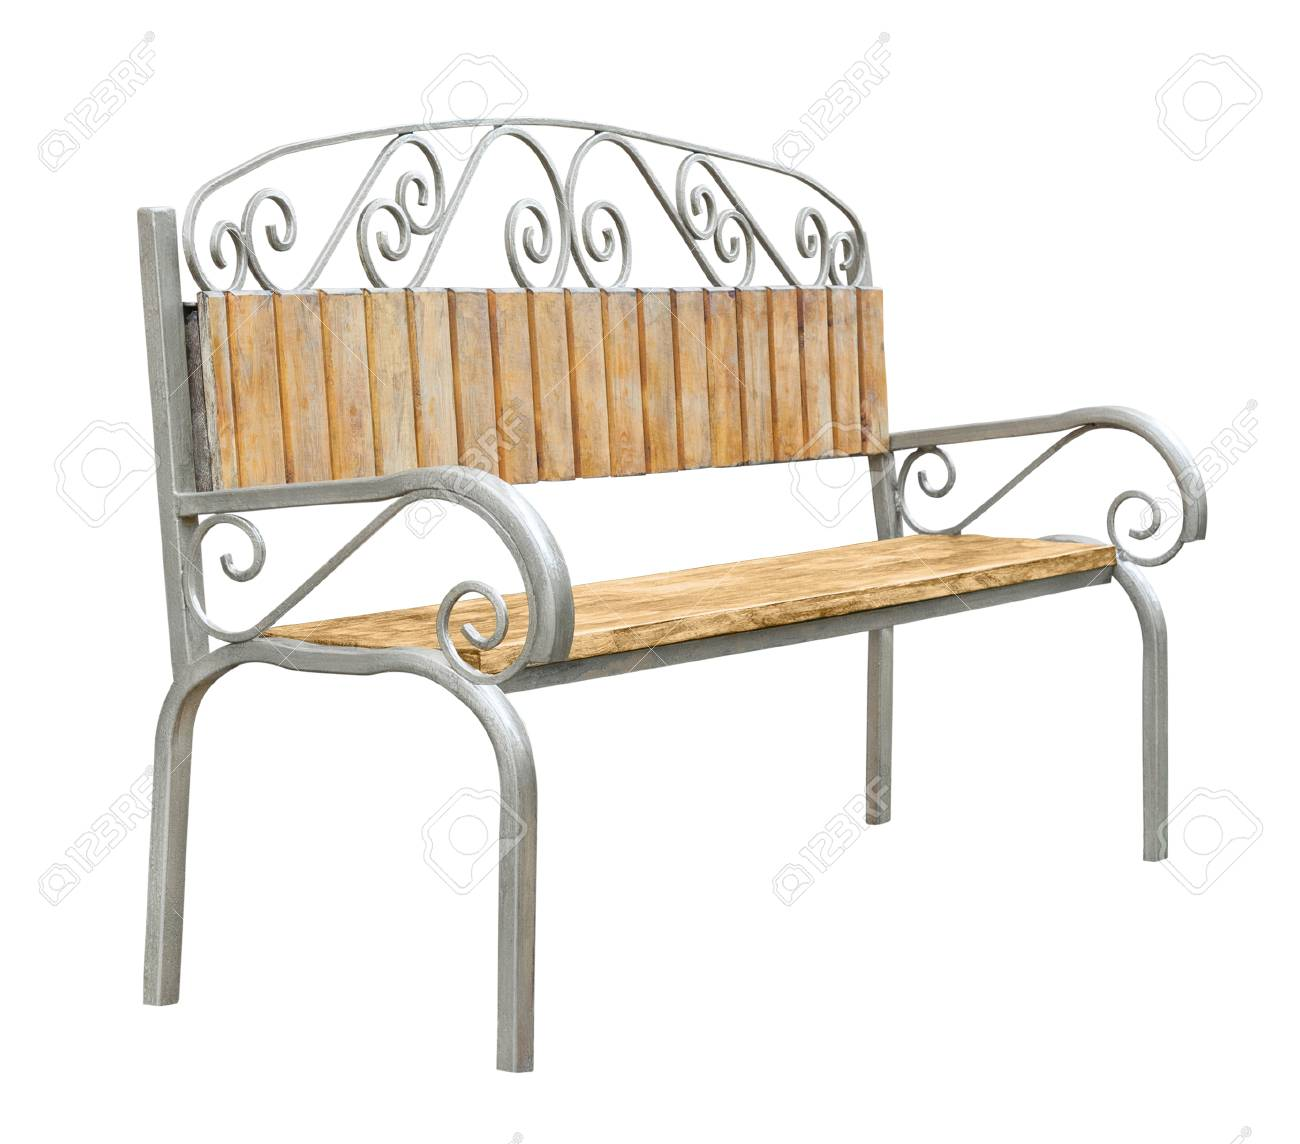 Side View On A Wooden Bench With Metal Legs Armrests And Floral